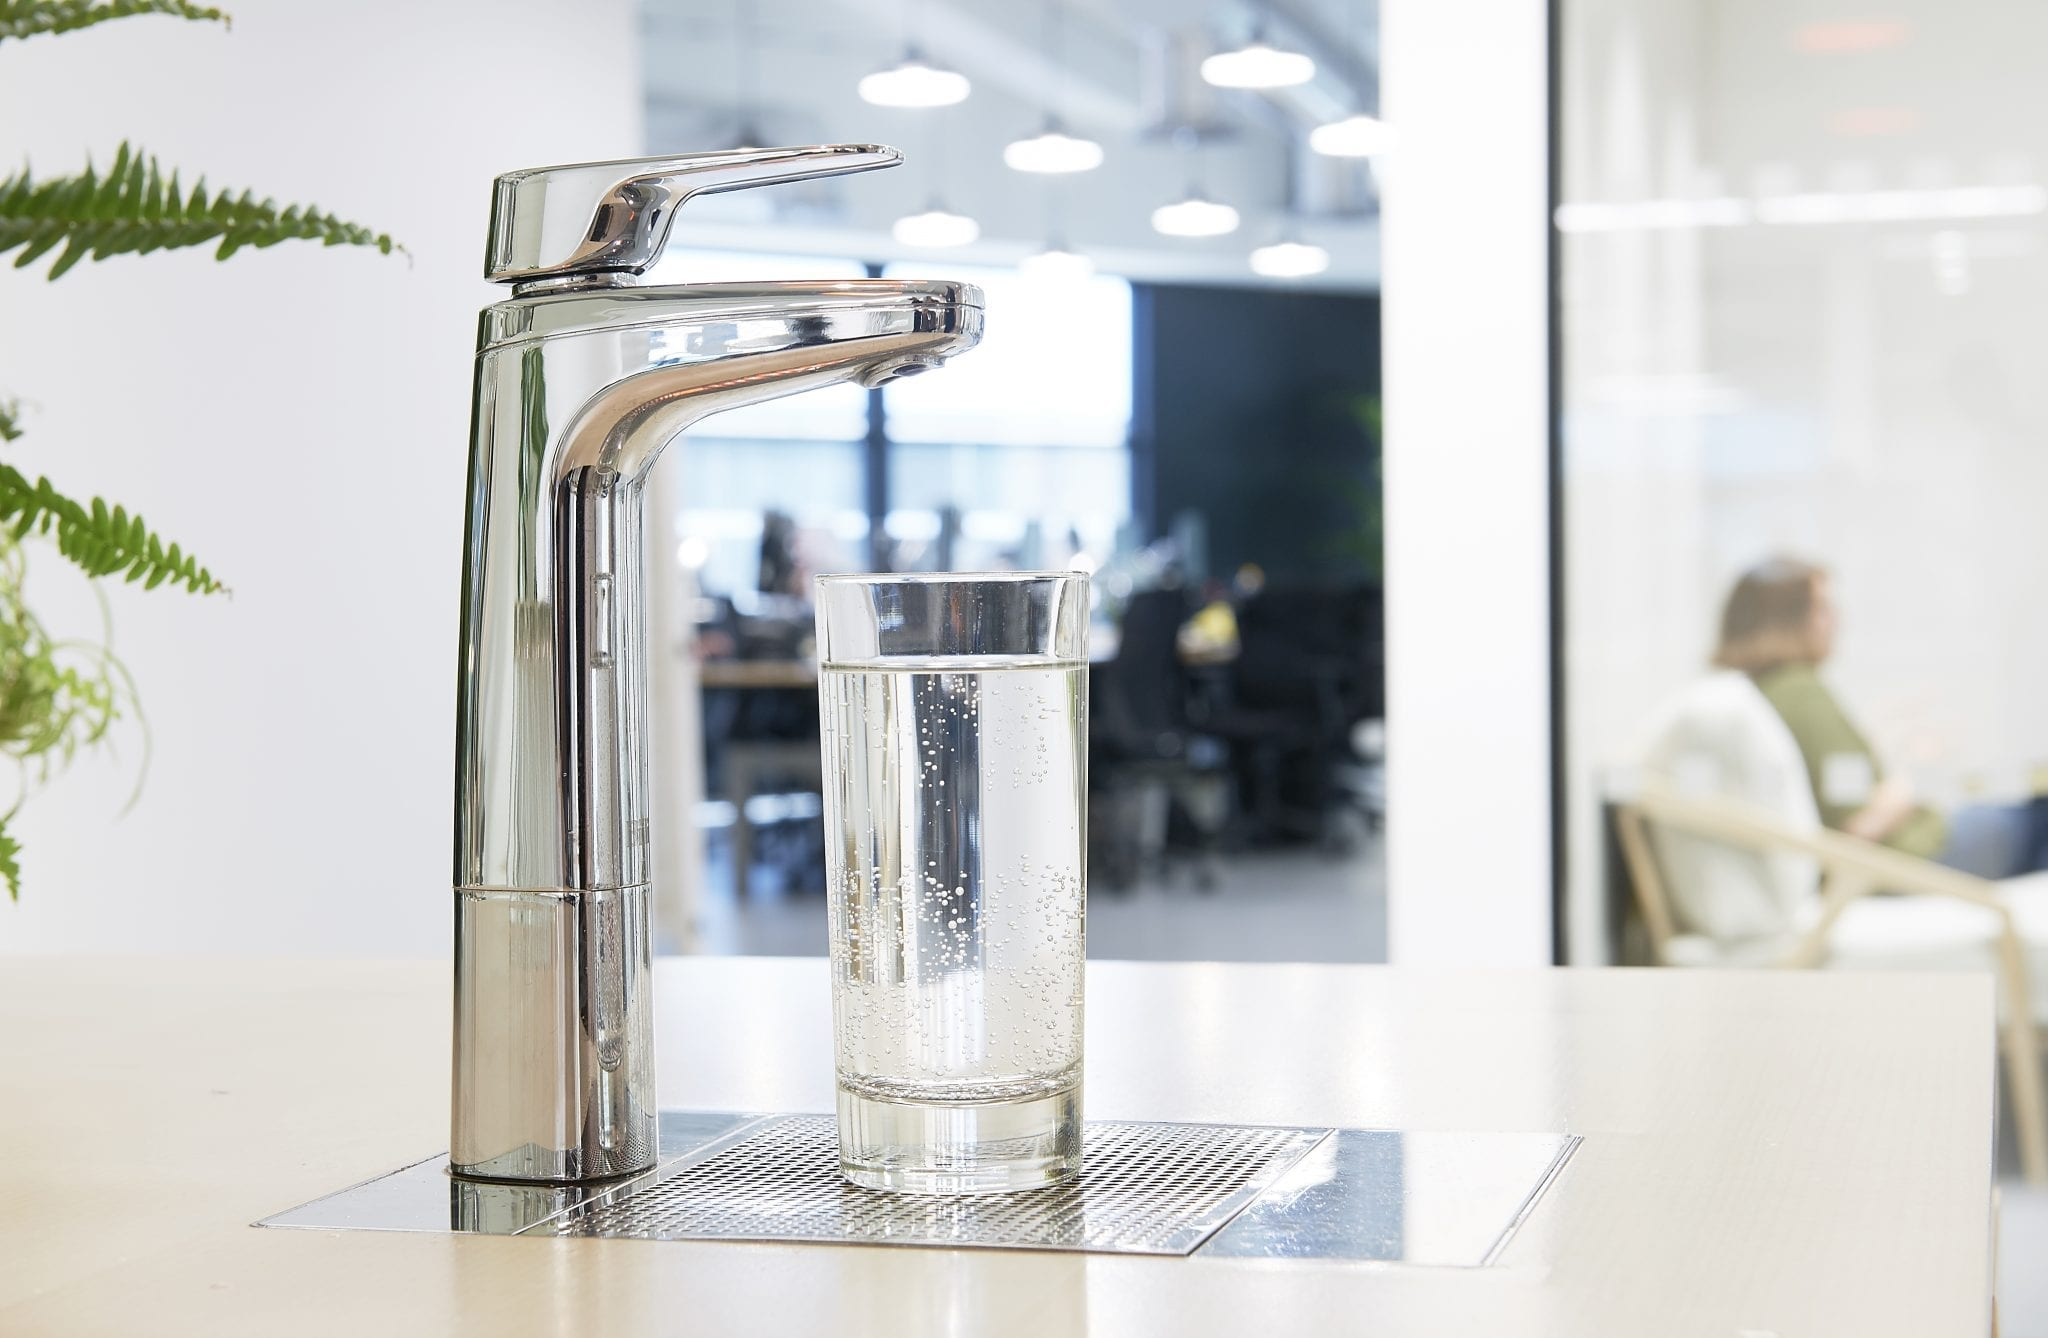 Chrome XL dispenser on riser and font with glass of sparkling water